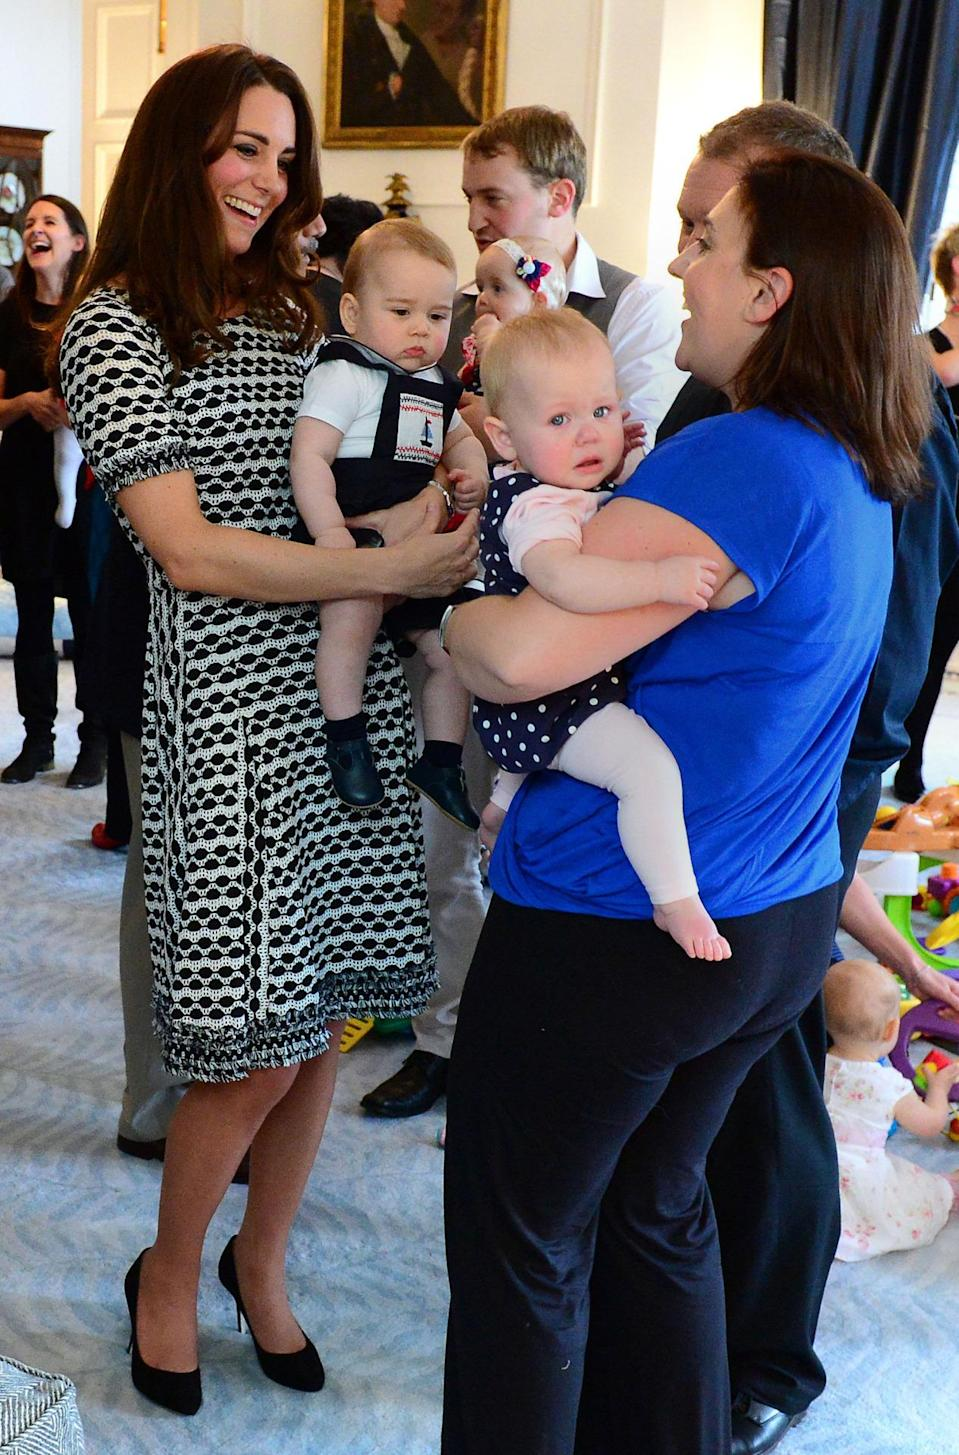 <p>Kate donned a printed knit dress by Tory Burch for Prince George's playdate. She teamed the look with simple black pumps by Jimmy Choo. </p><p><i>[Photo: PA]</i></p>